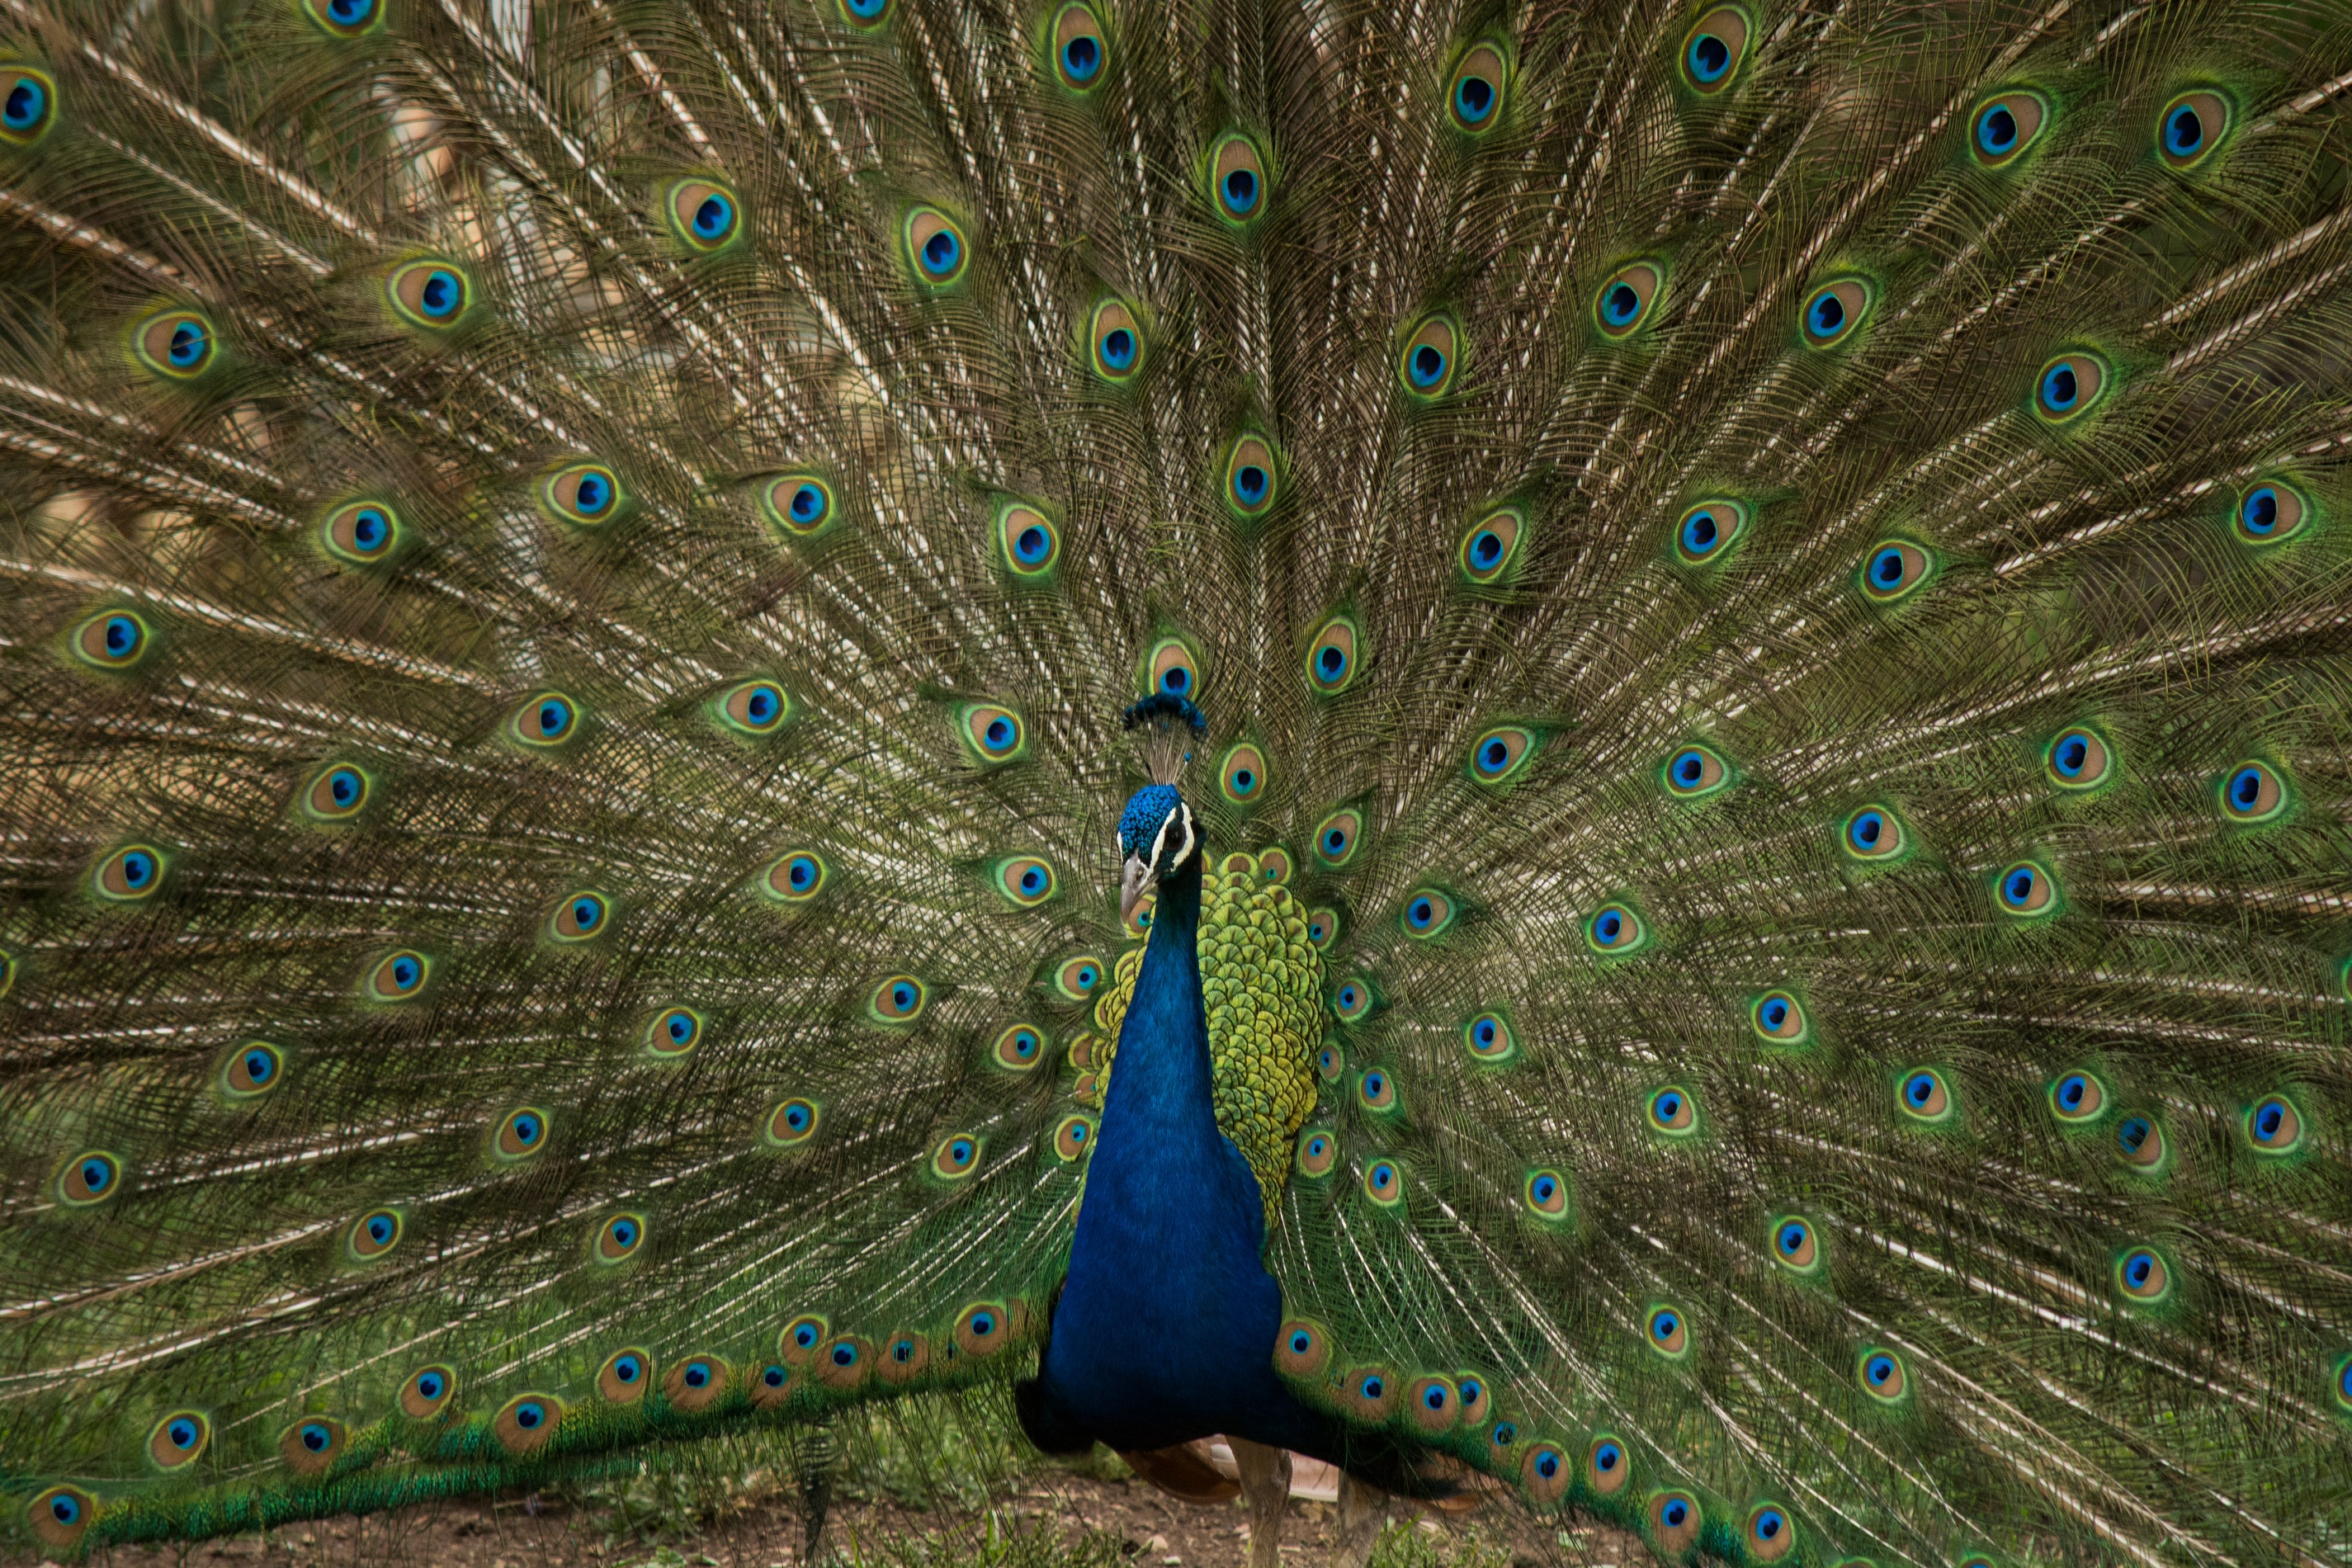 male peacock spread its tail